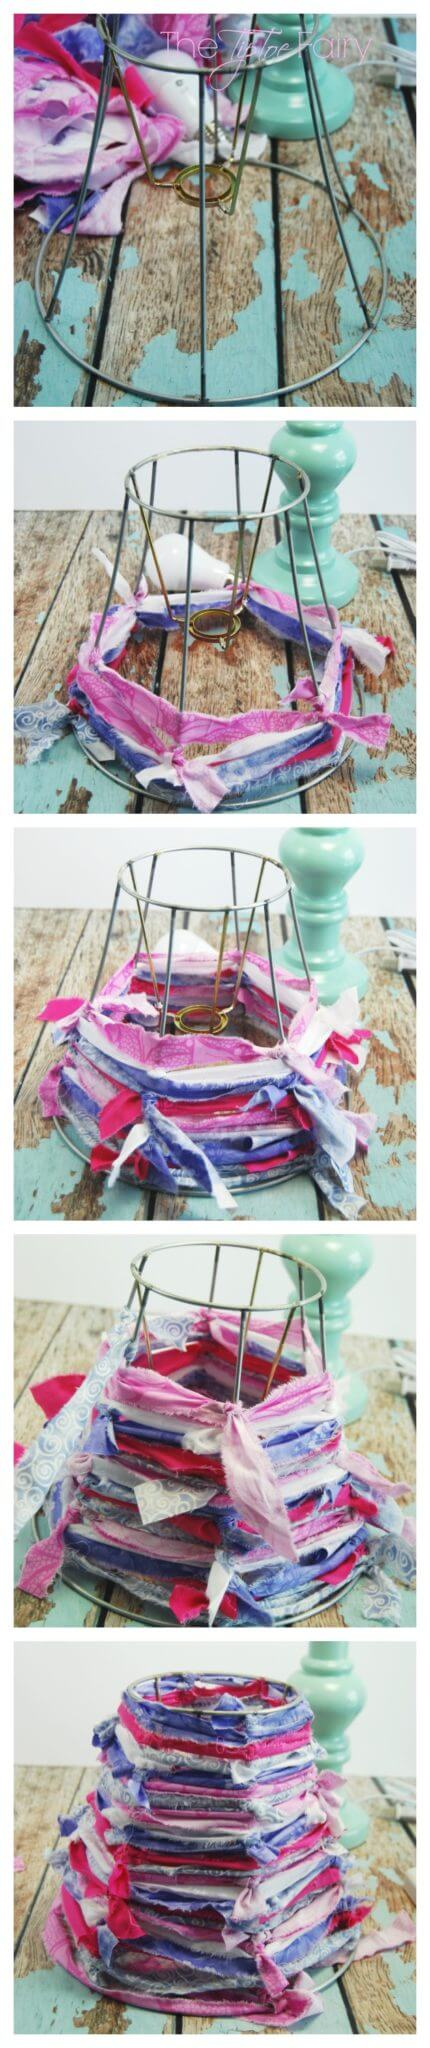 Make a Strippy Shabby Chic Lamp Shade with Crepe Paper Roses - this is an easy tutorial anyone can make.  Try it with the new GE Align™ PM LED Light Bulb | The TipToe Fairy #SleepAligned #Ad